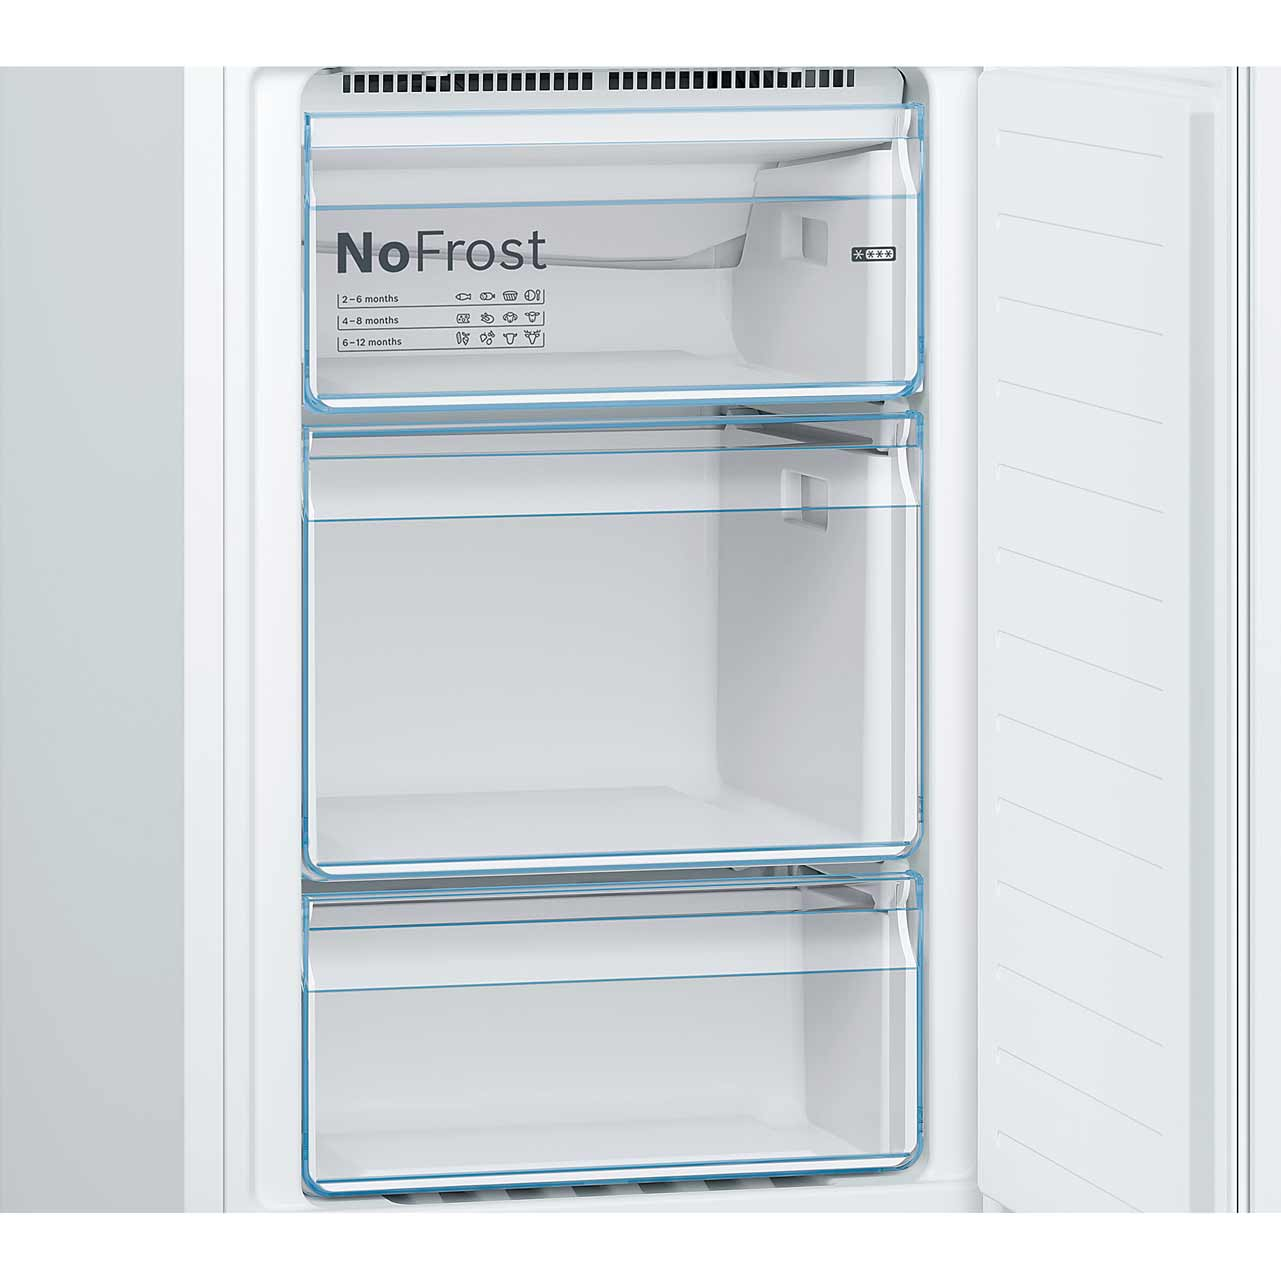 No Frost Bosch Kgn34nw3ag No Frost Fridge Freezer